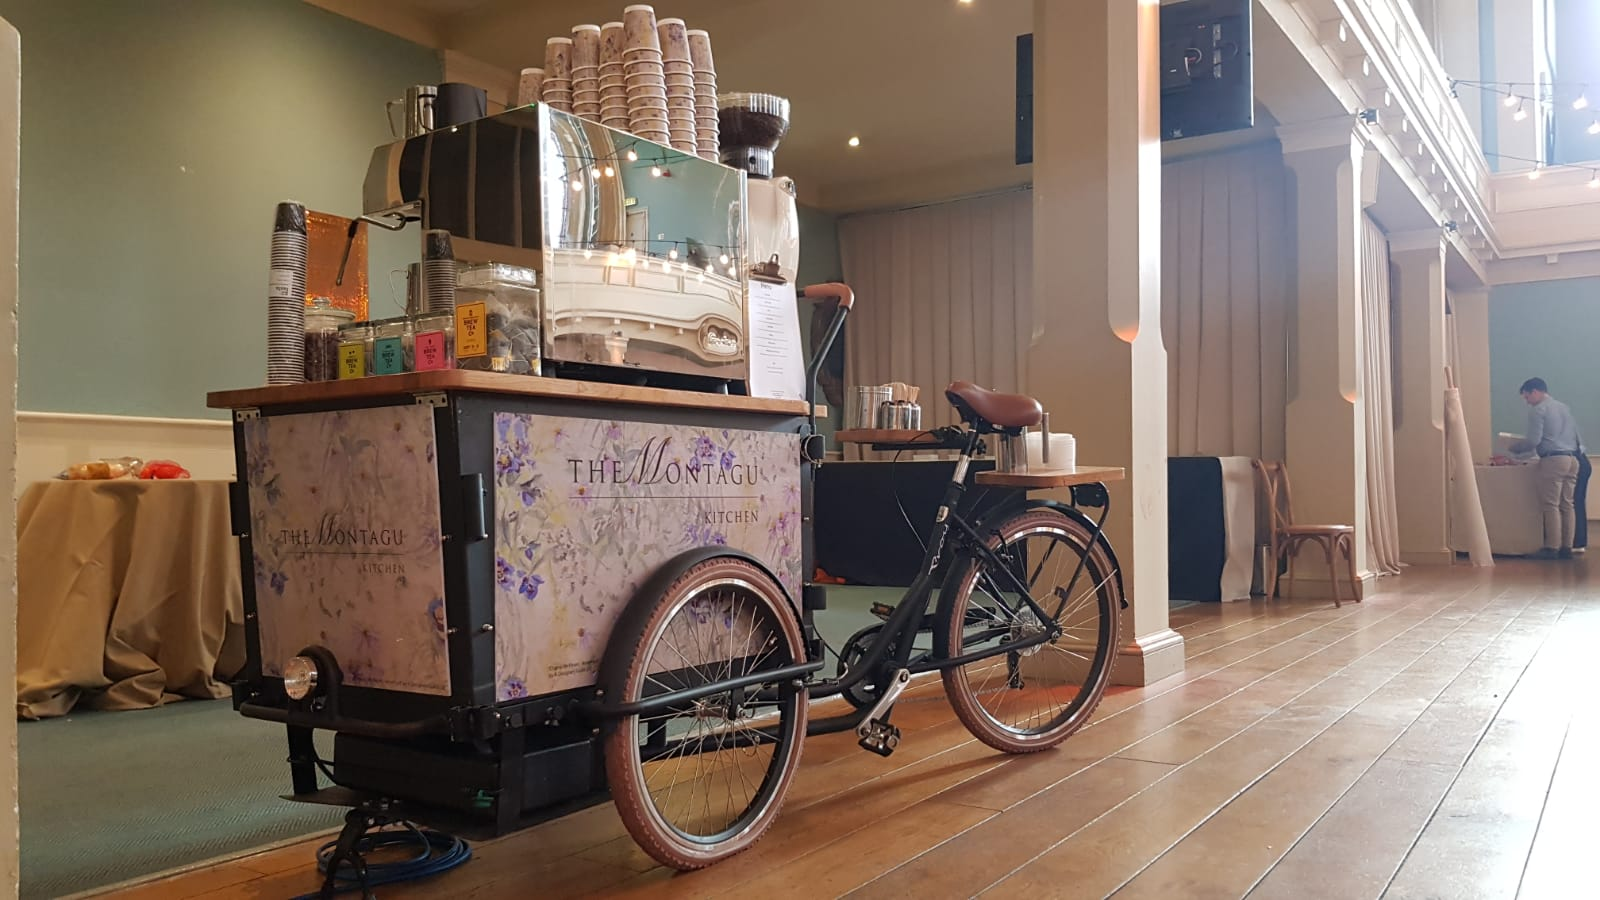 A coffee bike on a sunny day at an exhibition